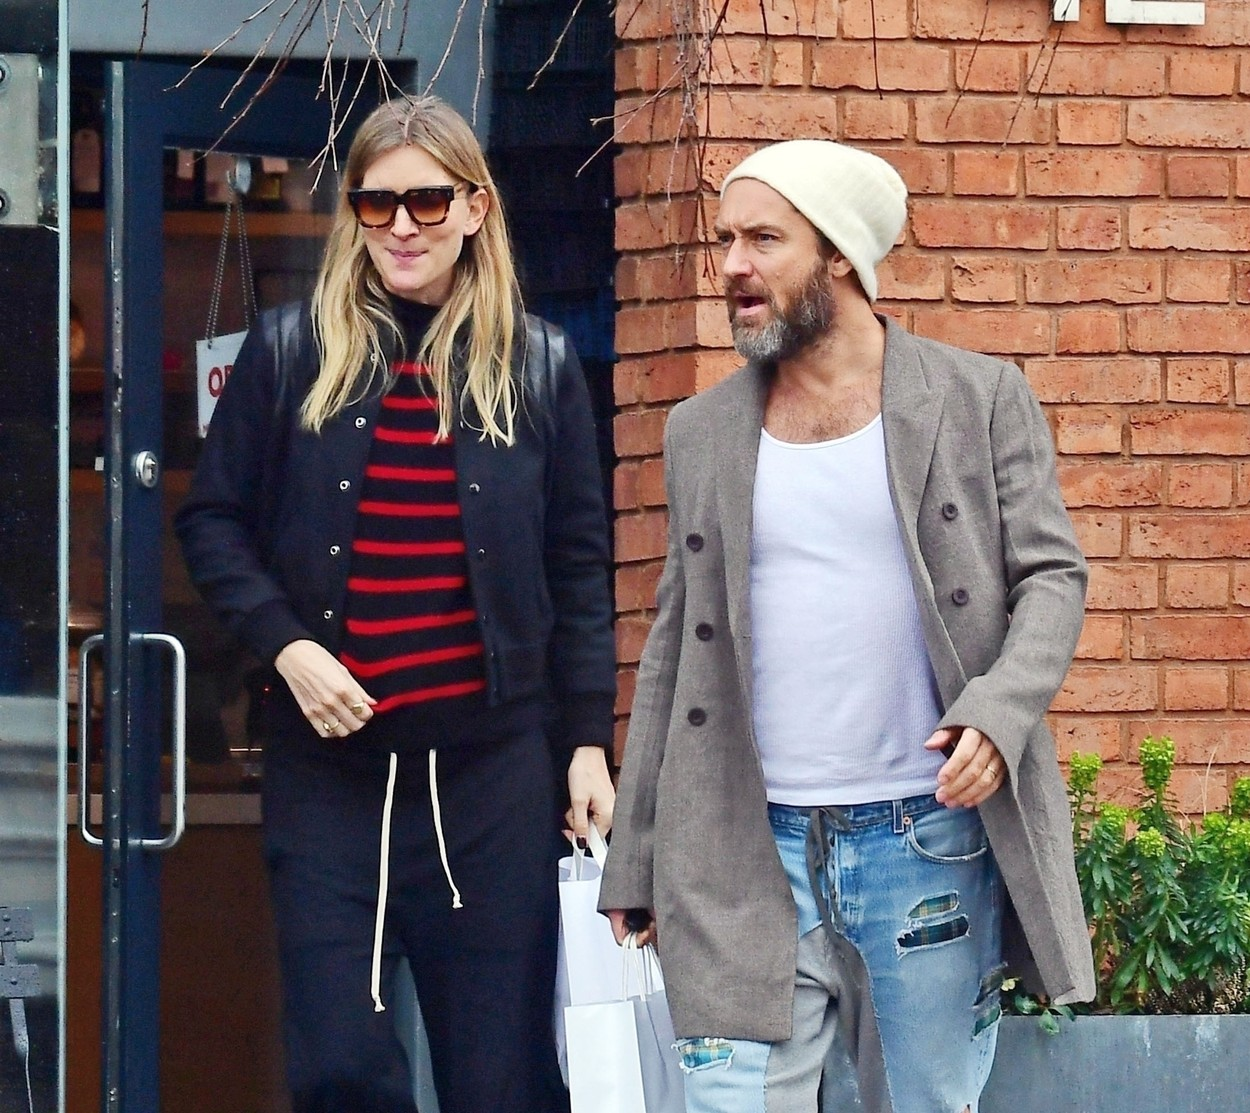 London, UNITED KINGDOM  - *EXCLUSIVE*  - WEB MUST CALL FOR PRICING - PICTURES TAKEN ON 08/03/2020 - The British Actor Jude Law sporting a bearded lookout for lunch in Primrose Hill with wife Phillipa Coan, it seems the sheepish couple may have something to tell us as Phillipa was cradling what looks like could be a baby bump and constantly trying to conceal her belly by pulling her jumper down as it kept riding up.   Jude has recently expressed how he would love to have a sixth child with Phillipa.  BACKGRID UK 20 MAY 2020,Image: 505264716, License: Rights-managed, Restrictions: , Model Release: no, Credit line: BACKGRID / Backgrid UK / Profimedia